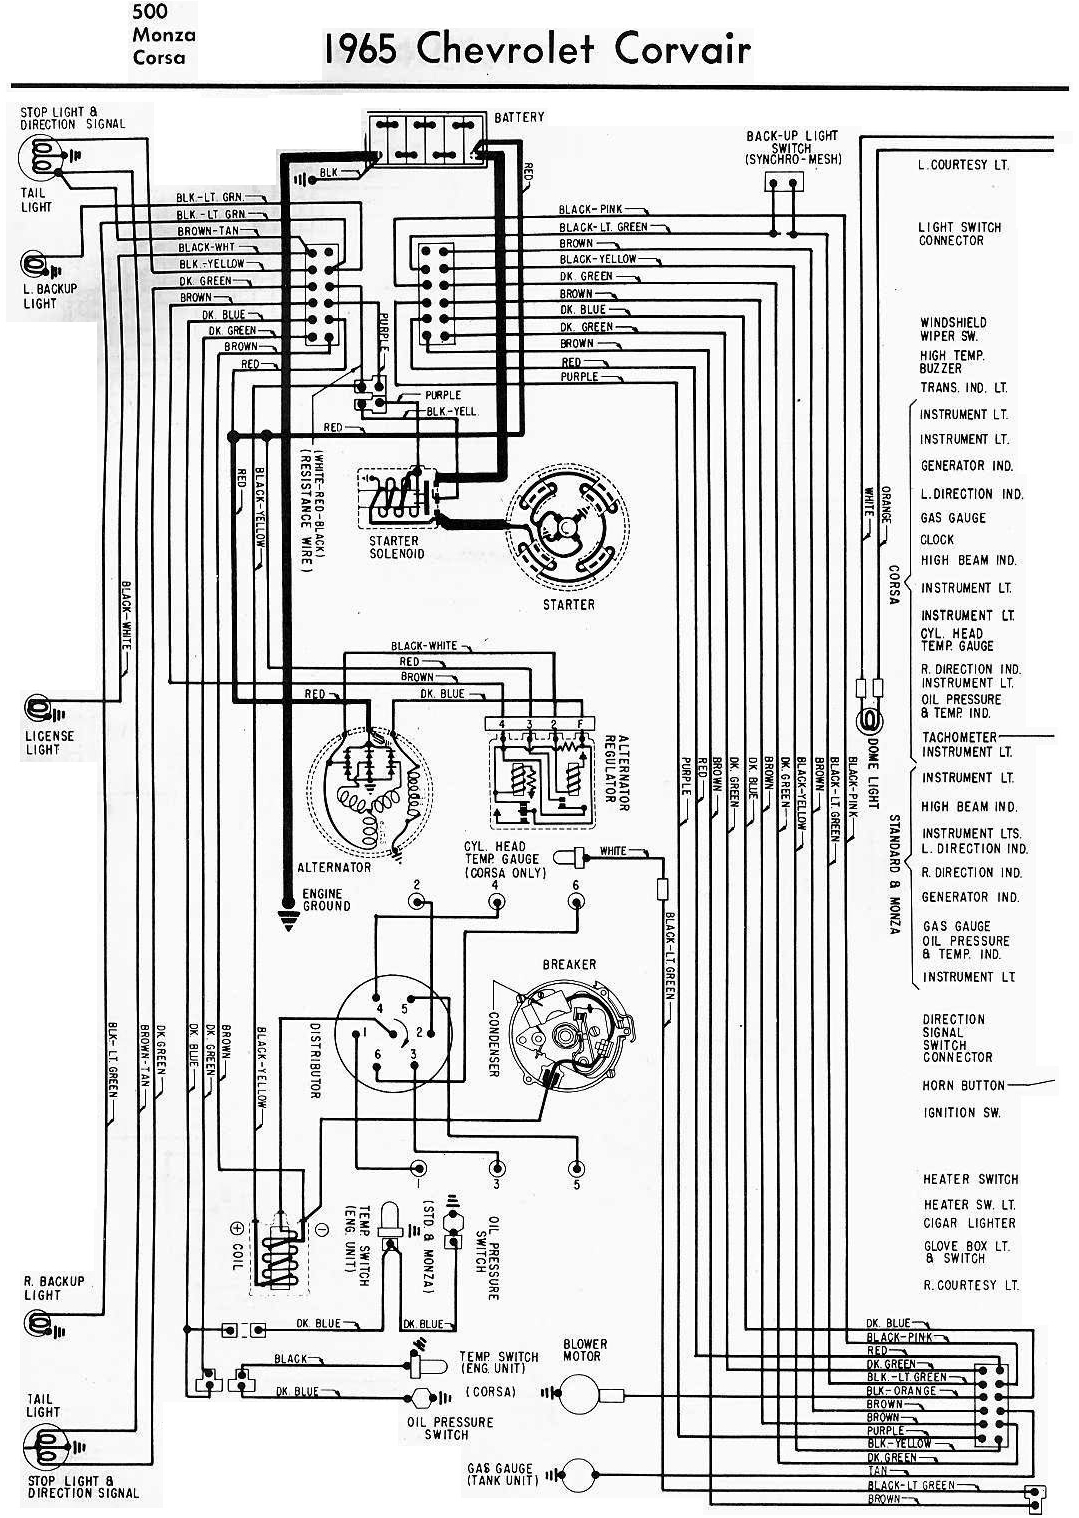 1965 chevrolet corvair electrical wiring diagram all hei ignition wiring diagram hei ignition wiring diagram hei ignition wiring diagram hei ignition wiring diagram